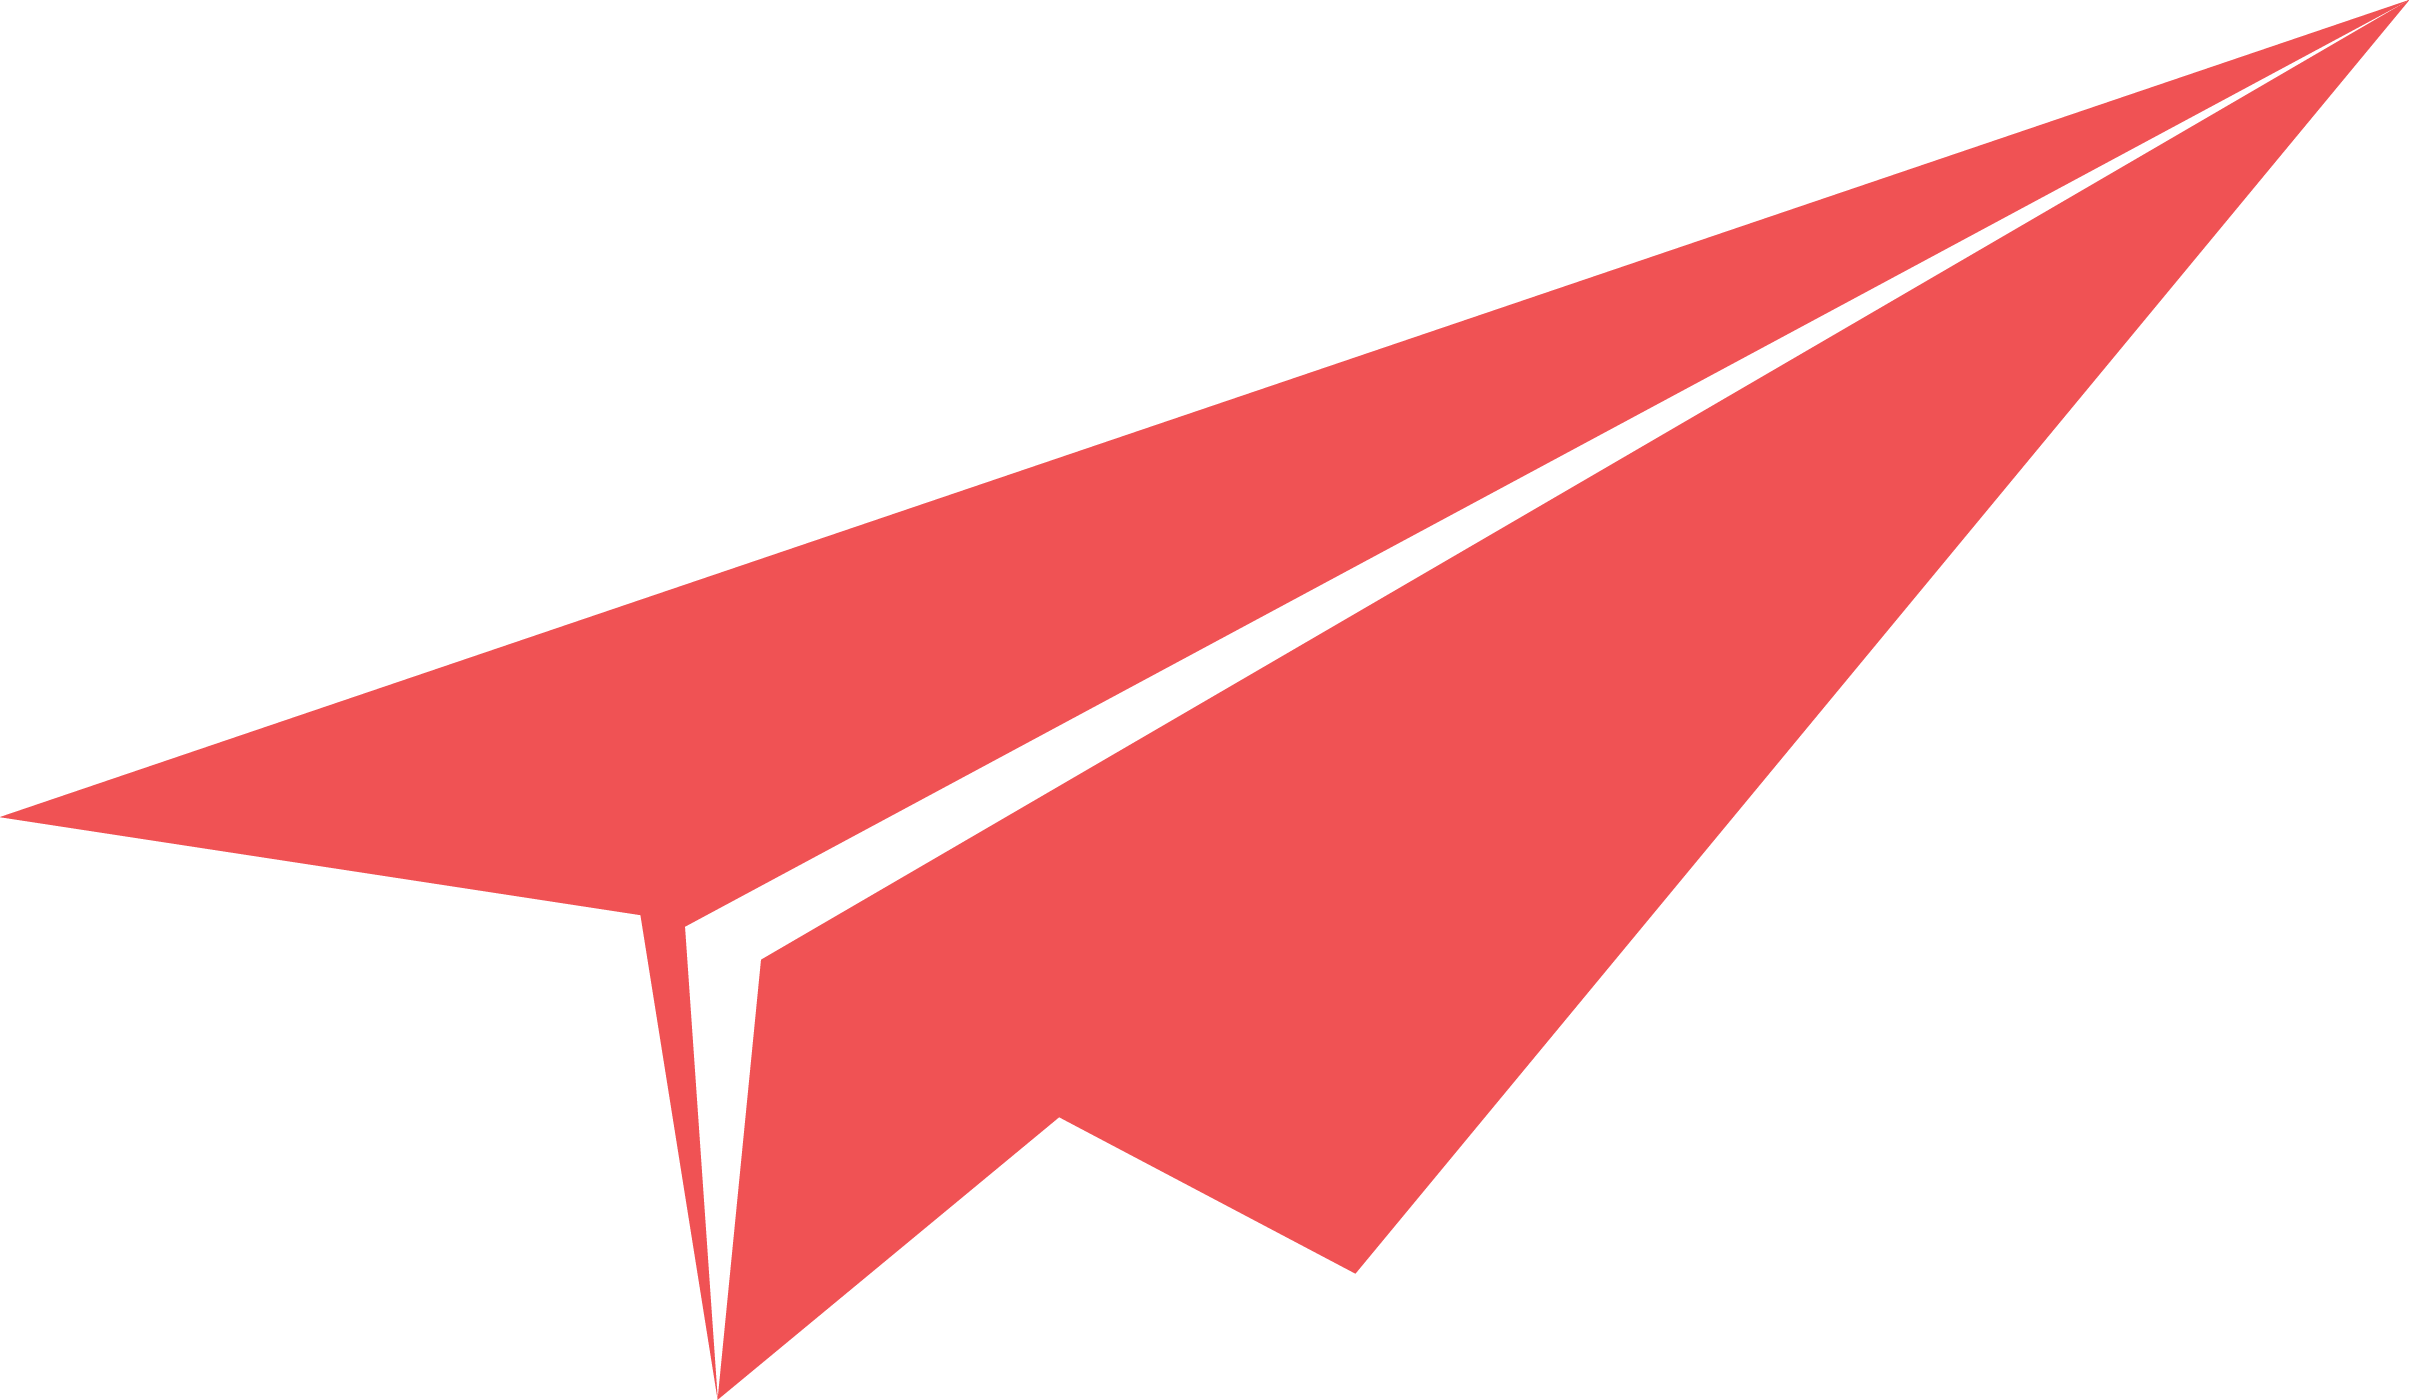 Paper png image purepng. Clipart plane red